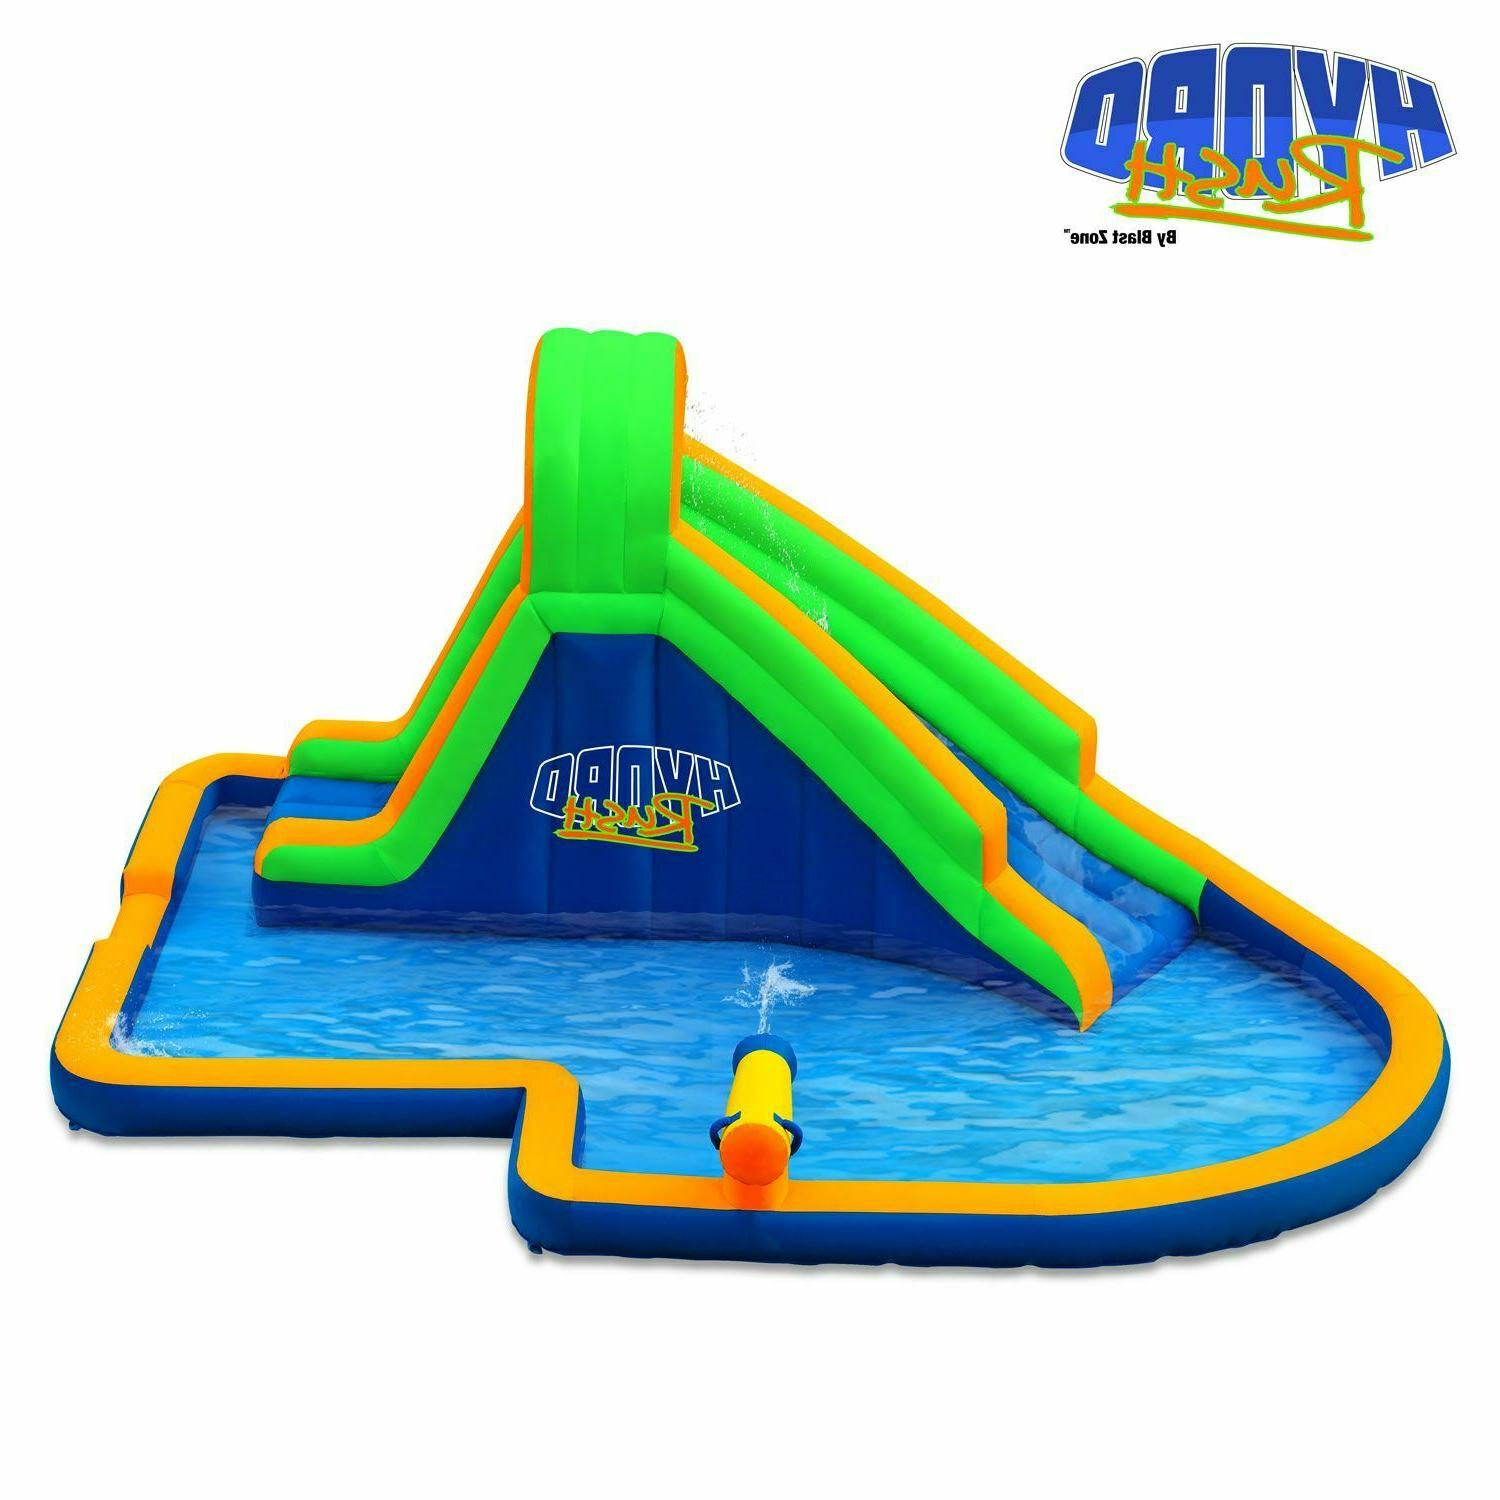 Blast Zone Inflatable Bounce House: Hydro Rush Park